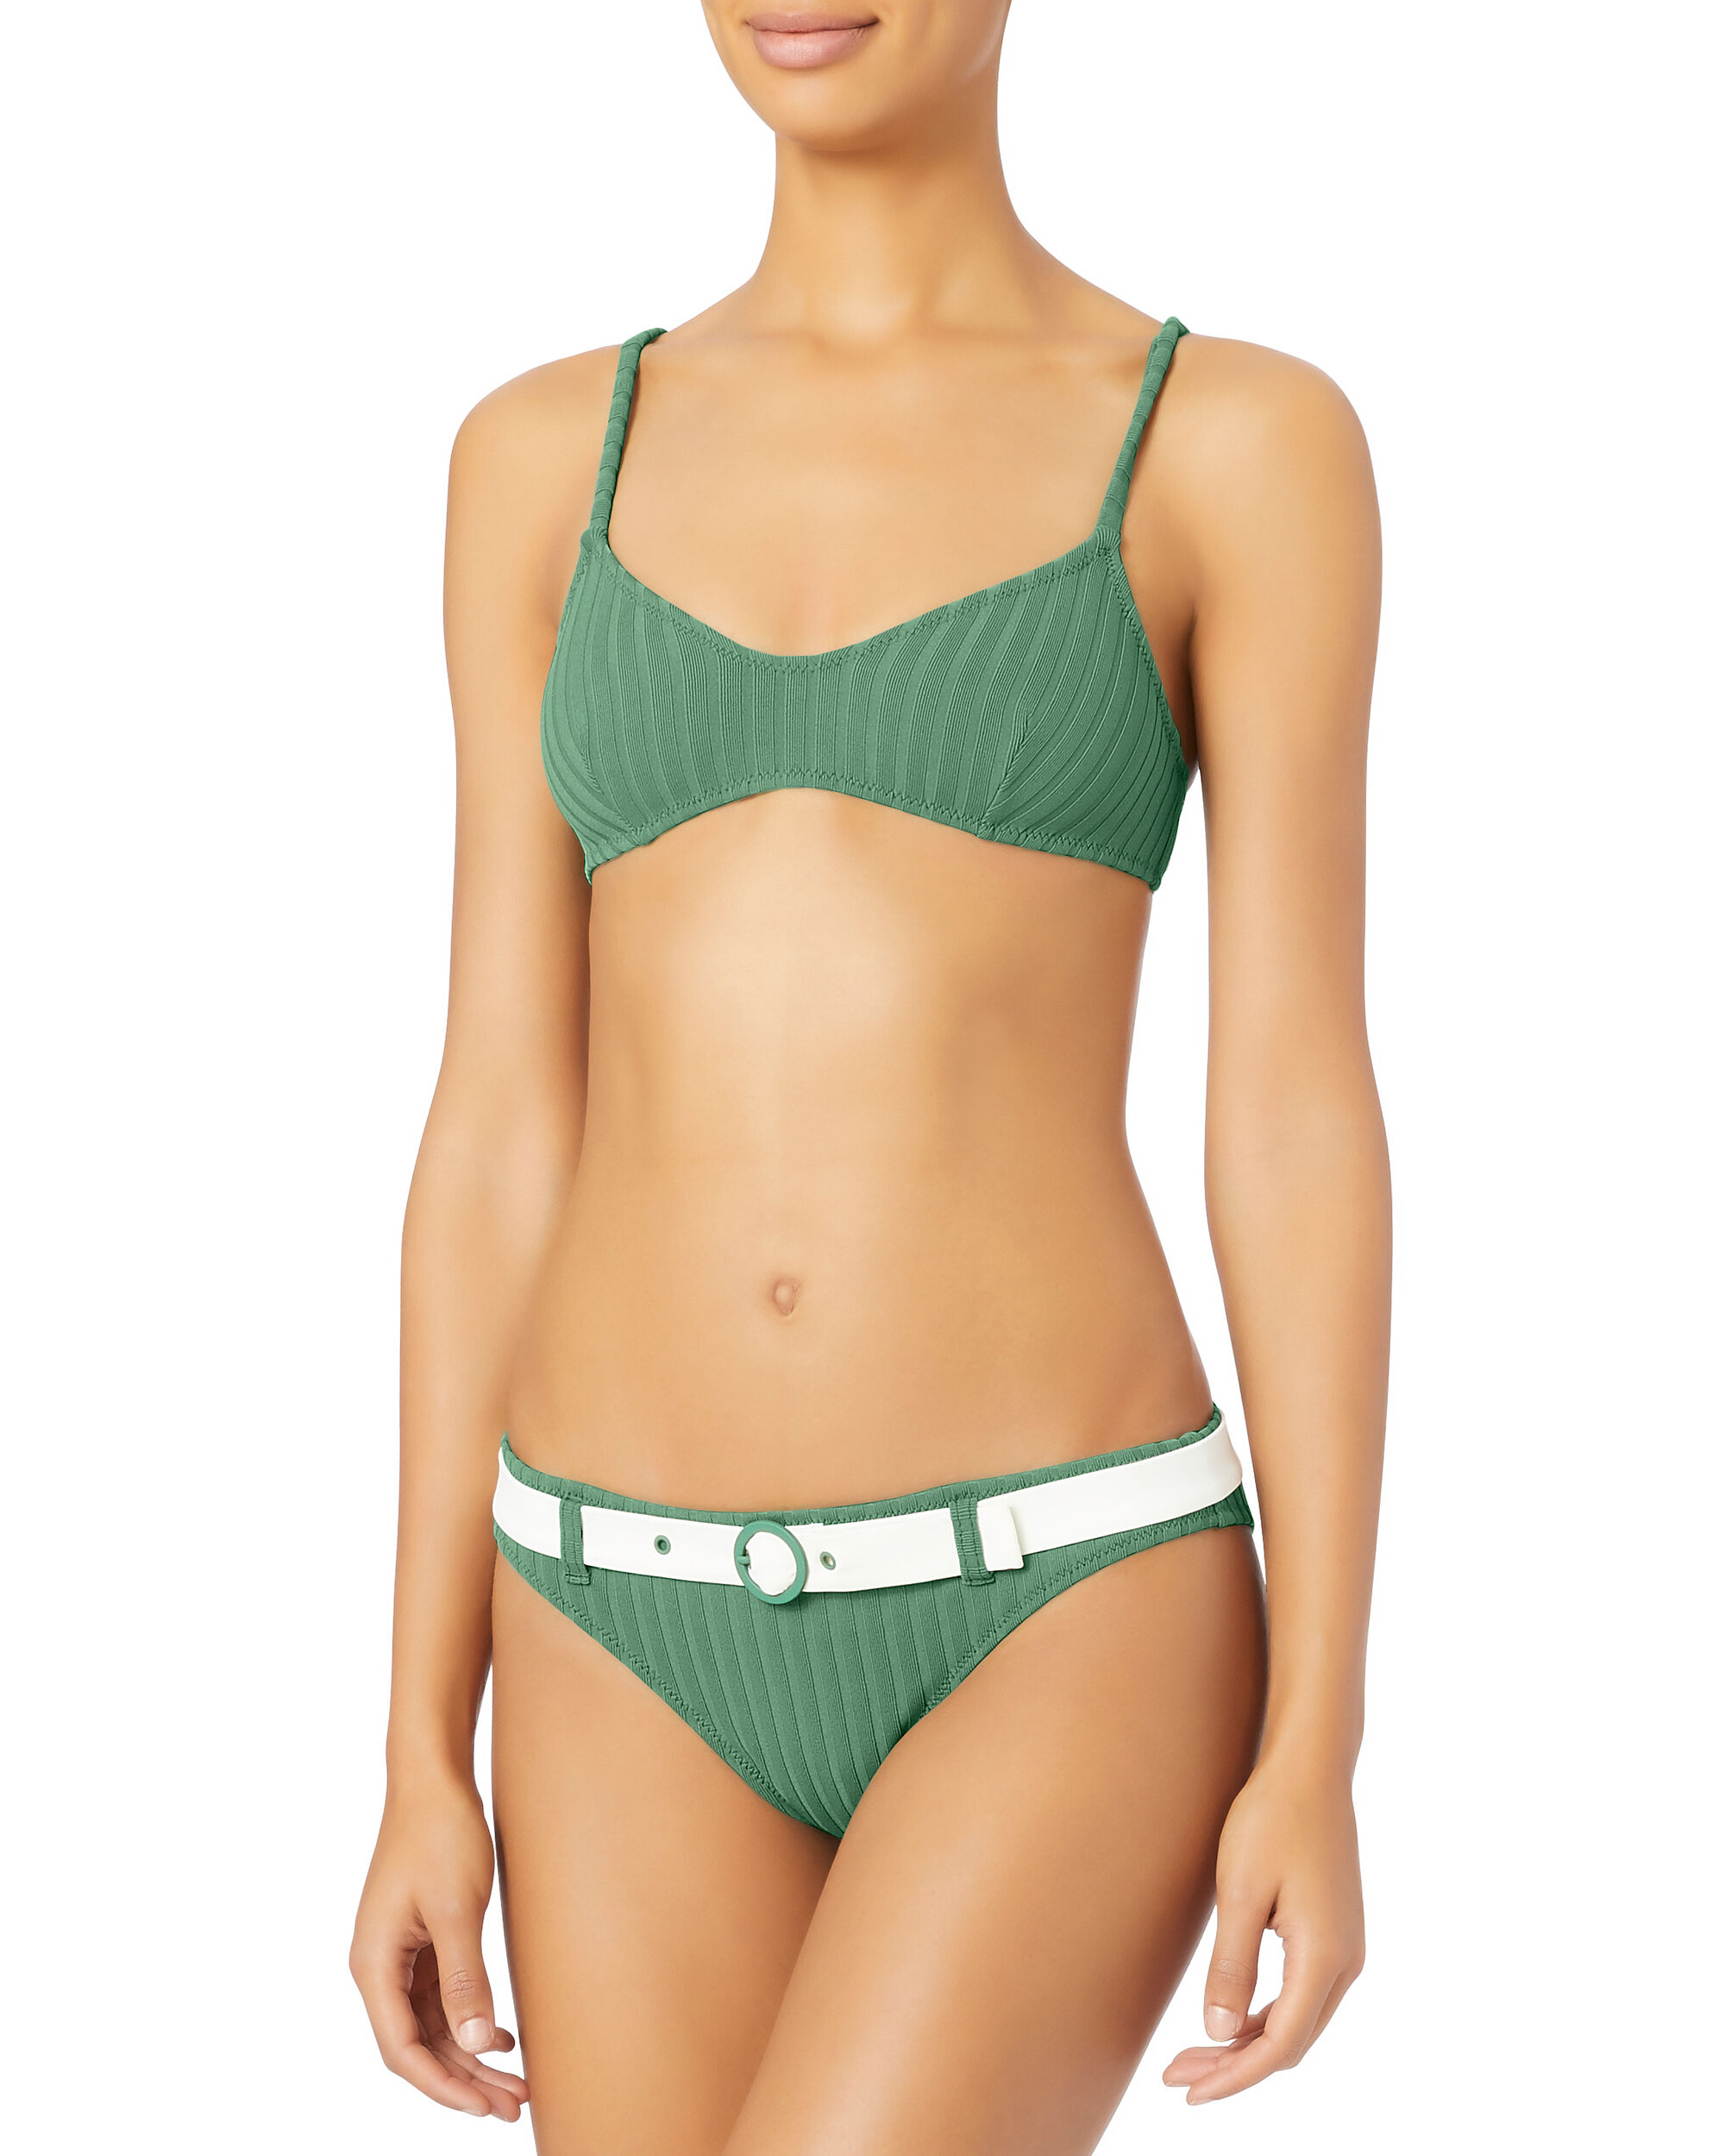 Rachel Emerald Belted Rib Bikini Bottom, EMERALD, hi-res